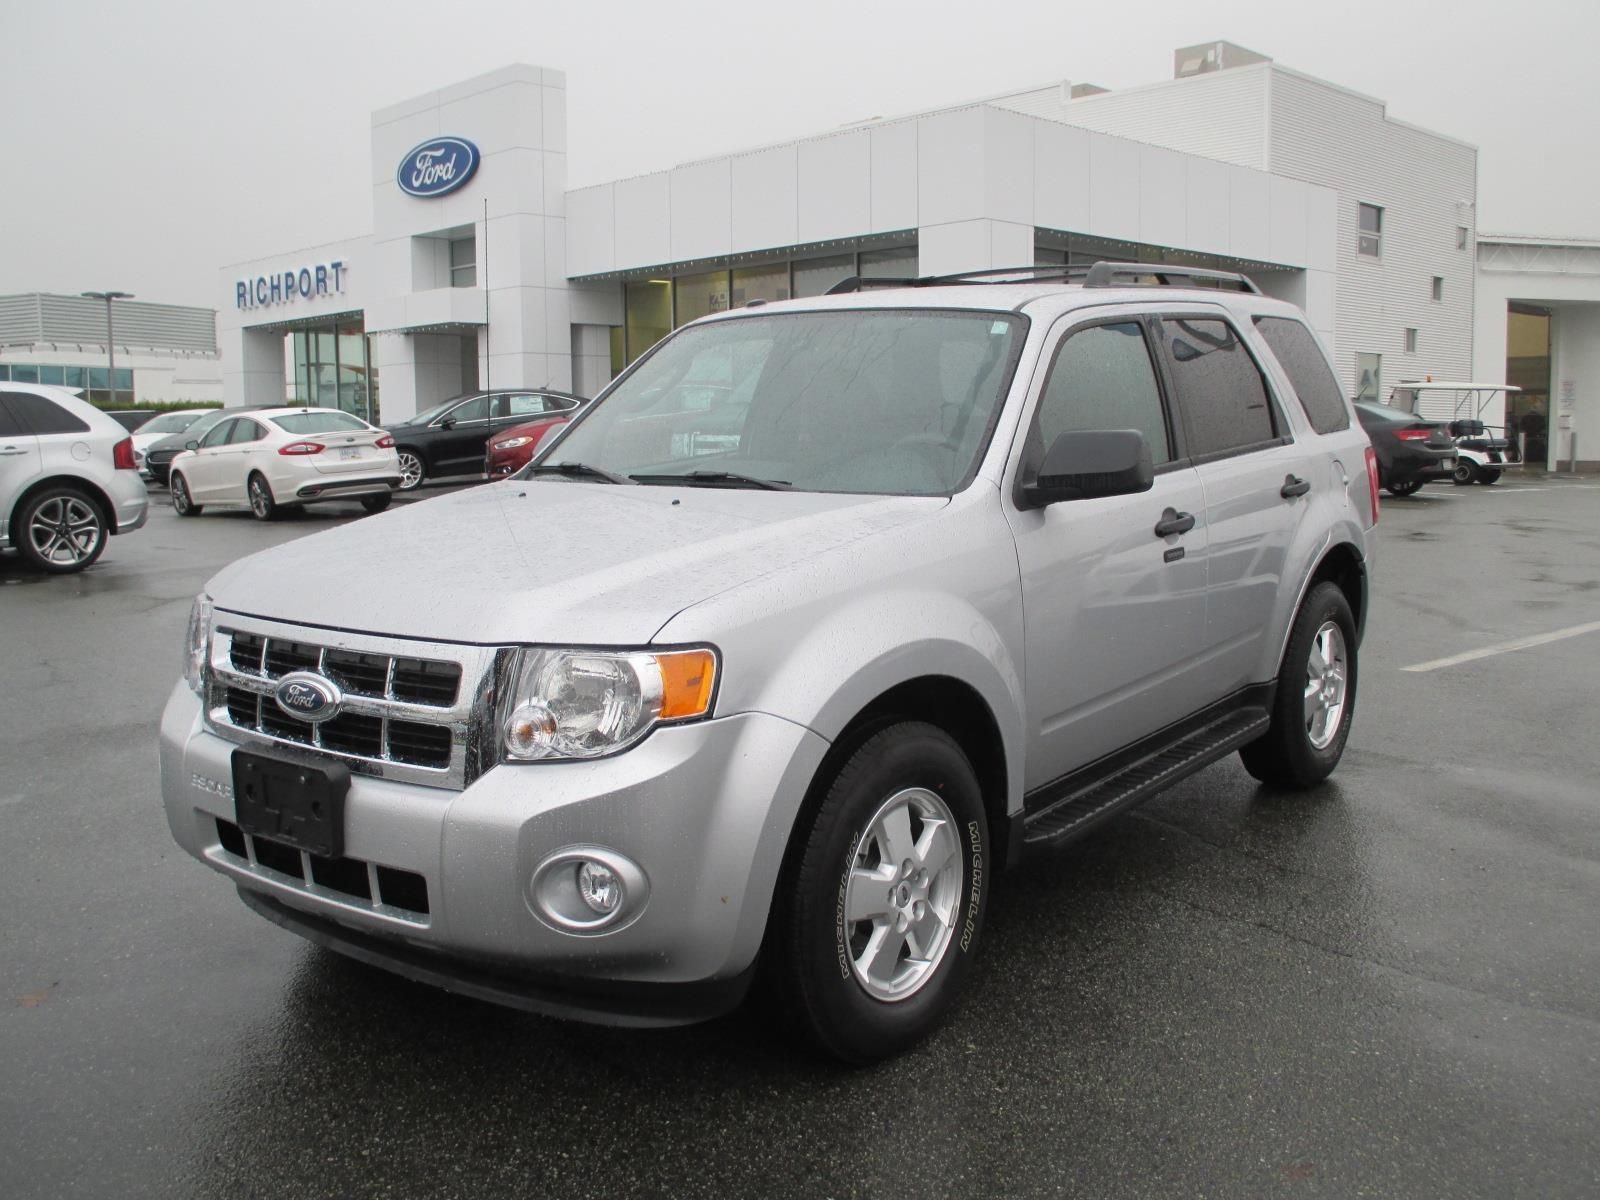 2012 ford escape xlt 4x4 in richmond used inventory richport ford. Cars Review. Best American Auto & Cars Review